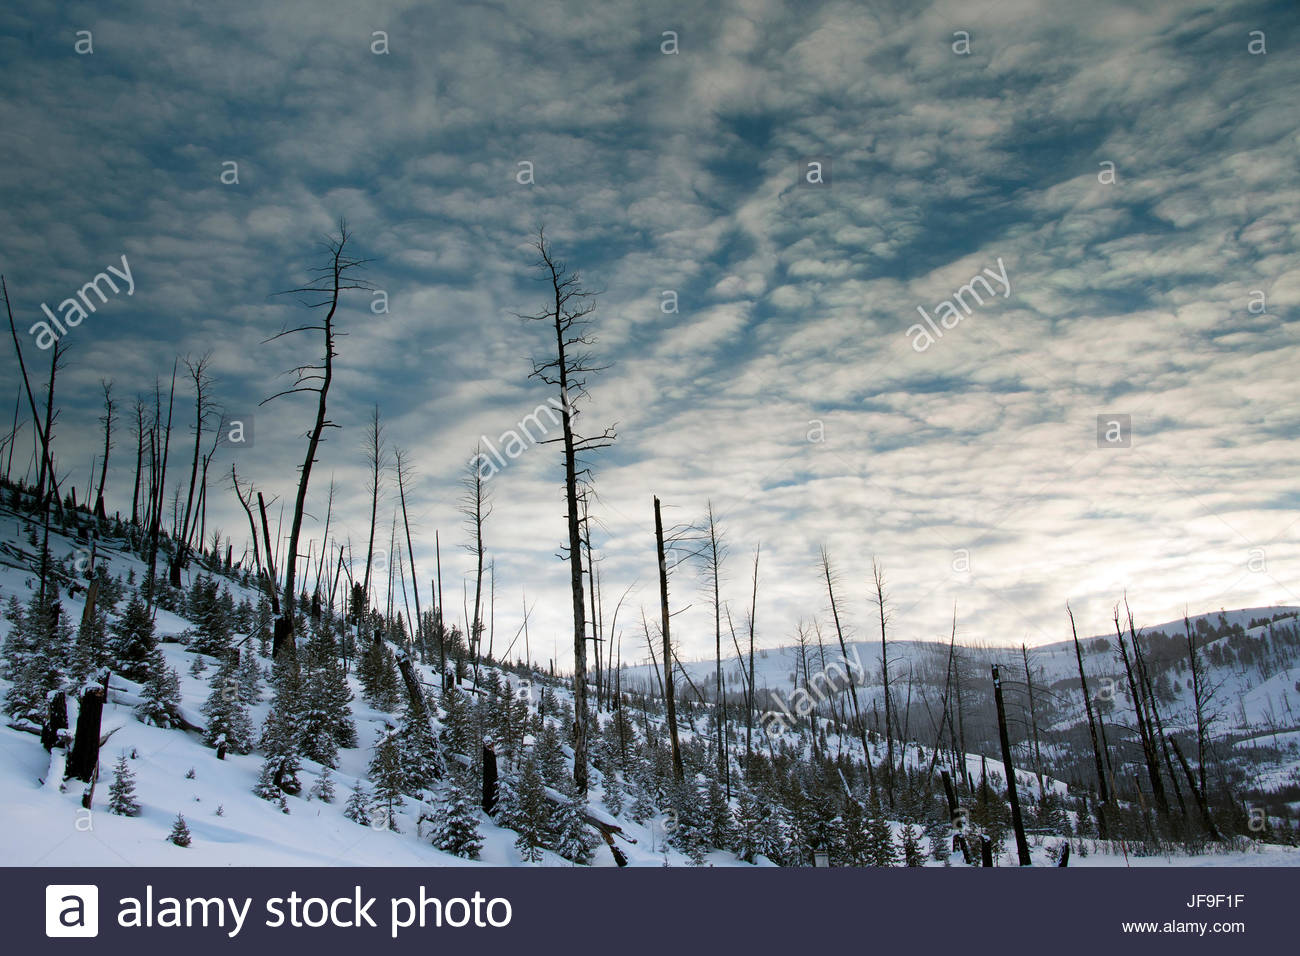 New conifer growth amid the charred remains of an old forest in a snowy landscape. - Stock Image